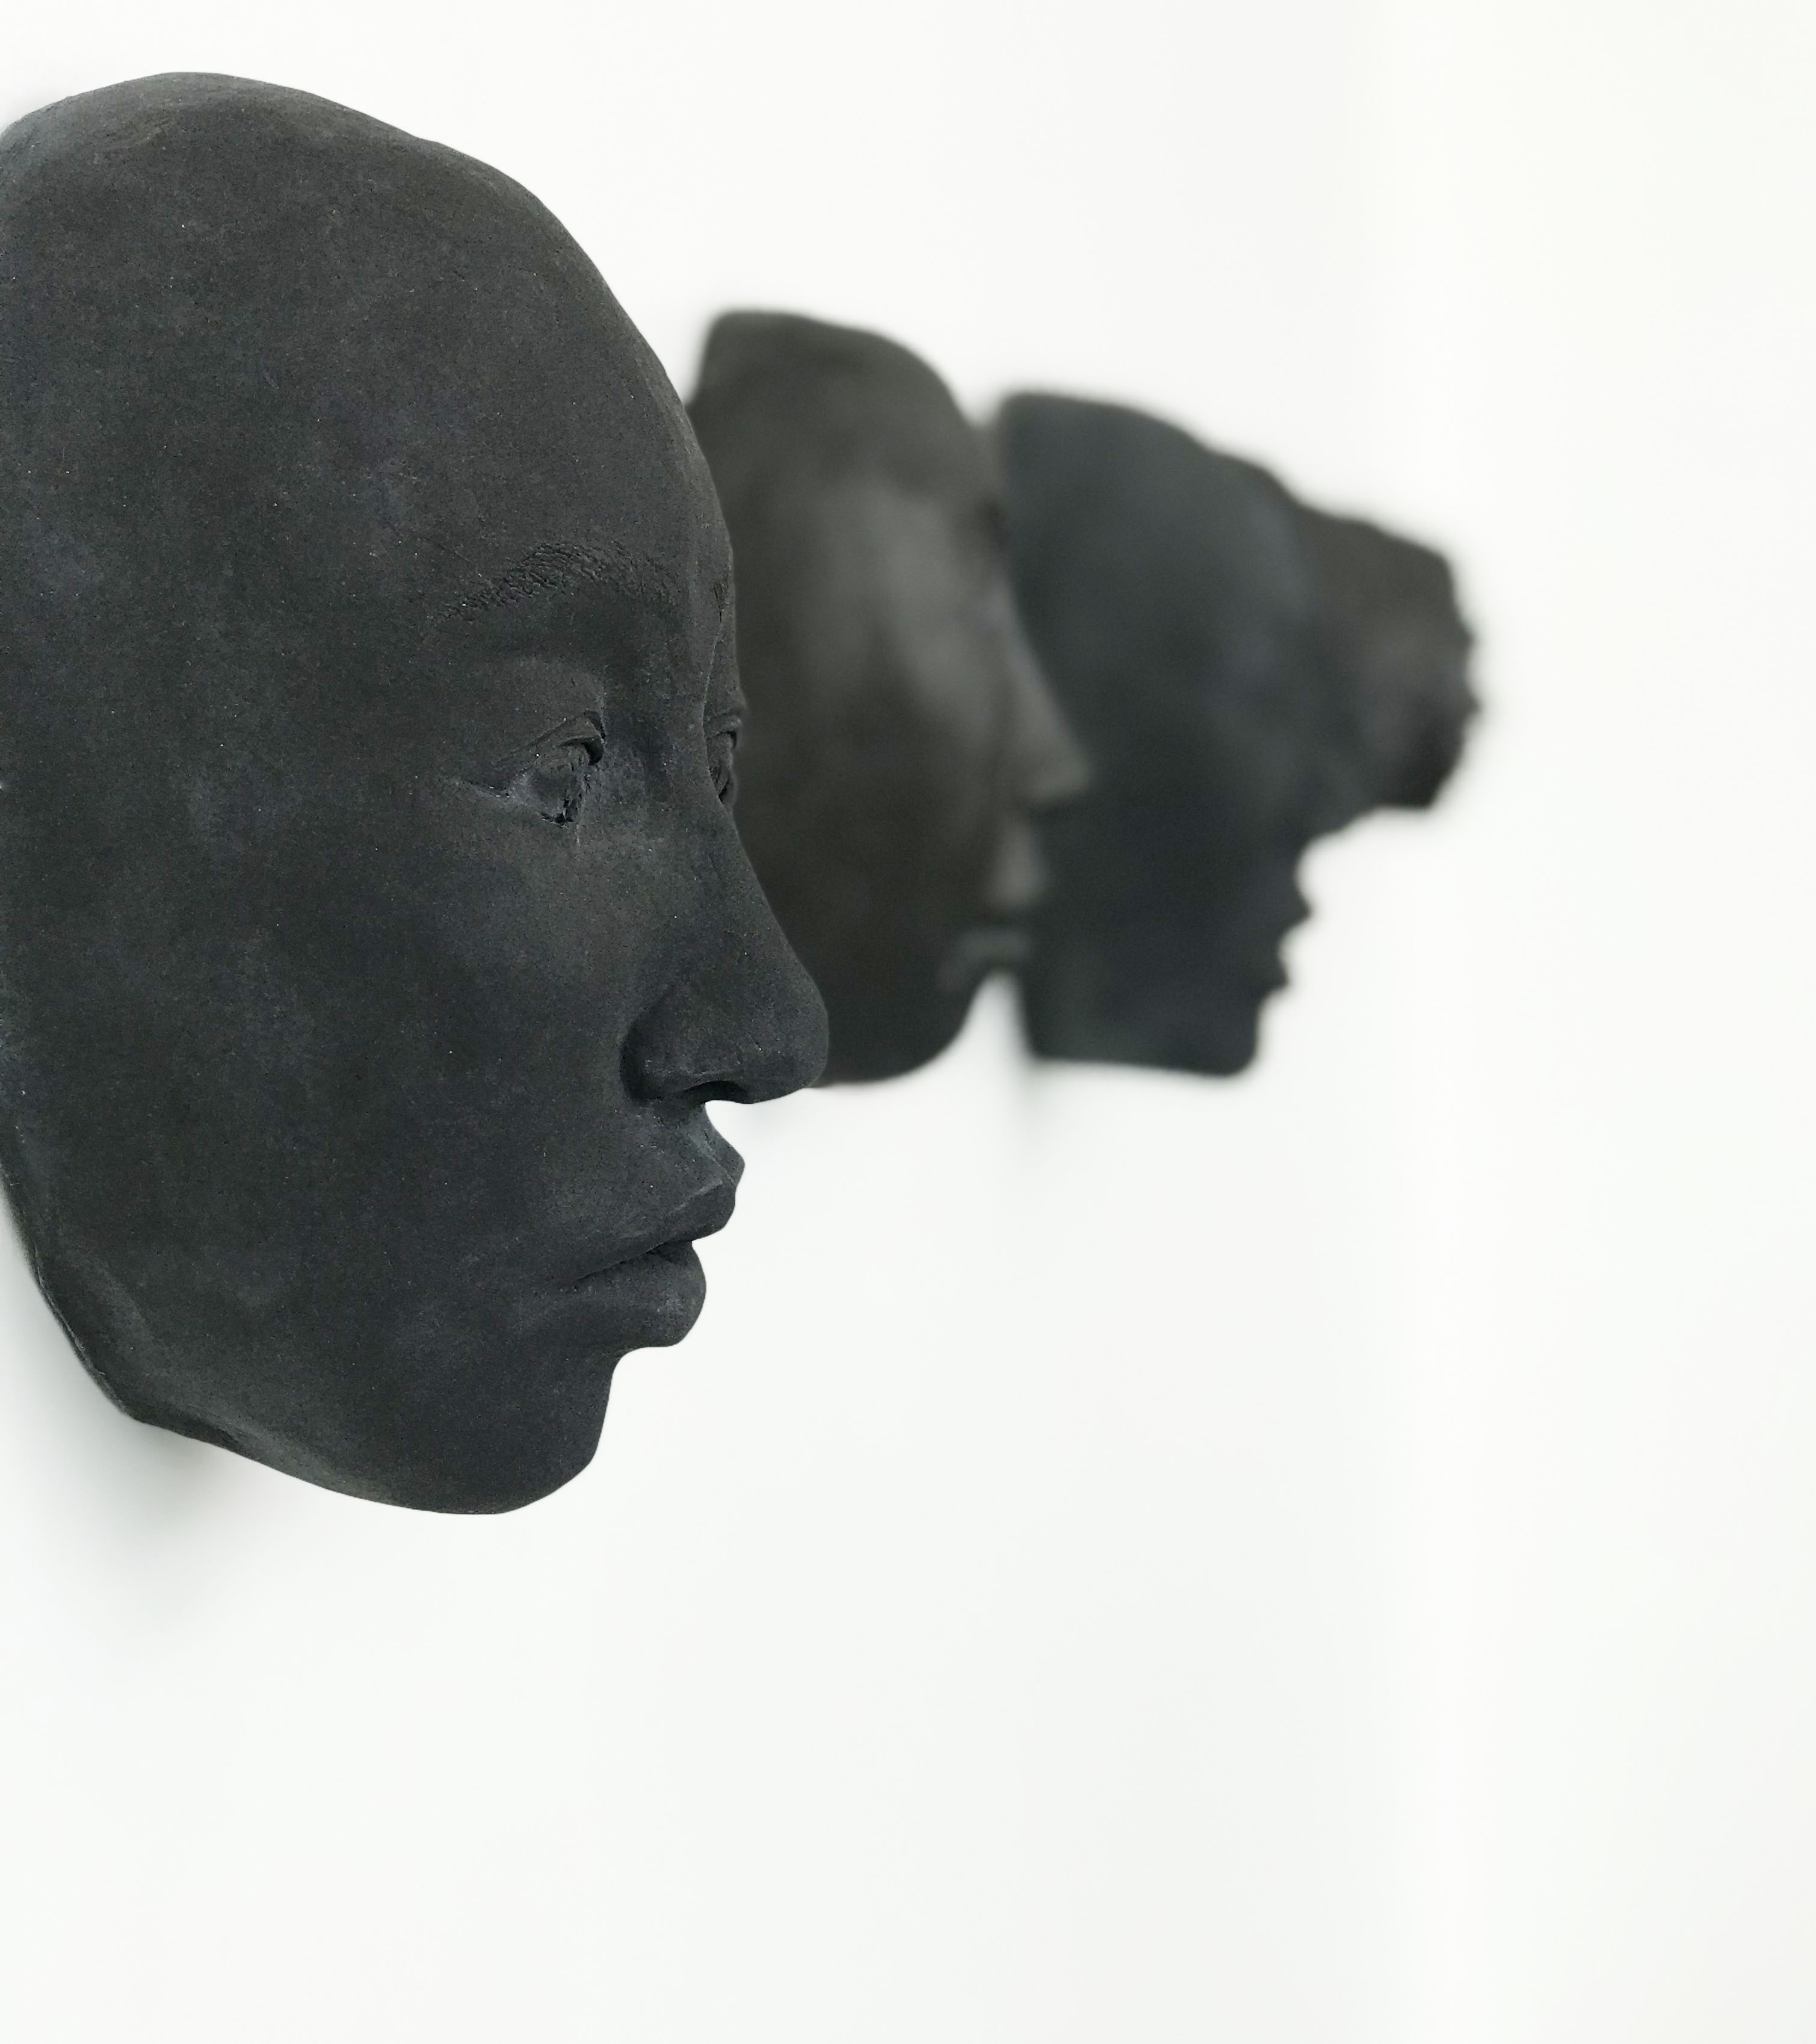 an in focus black ceramic face mounted on a white wall, with a somber facial expression and similar, out of focus, black ceramic faces in the background.